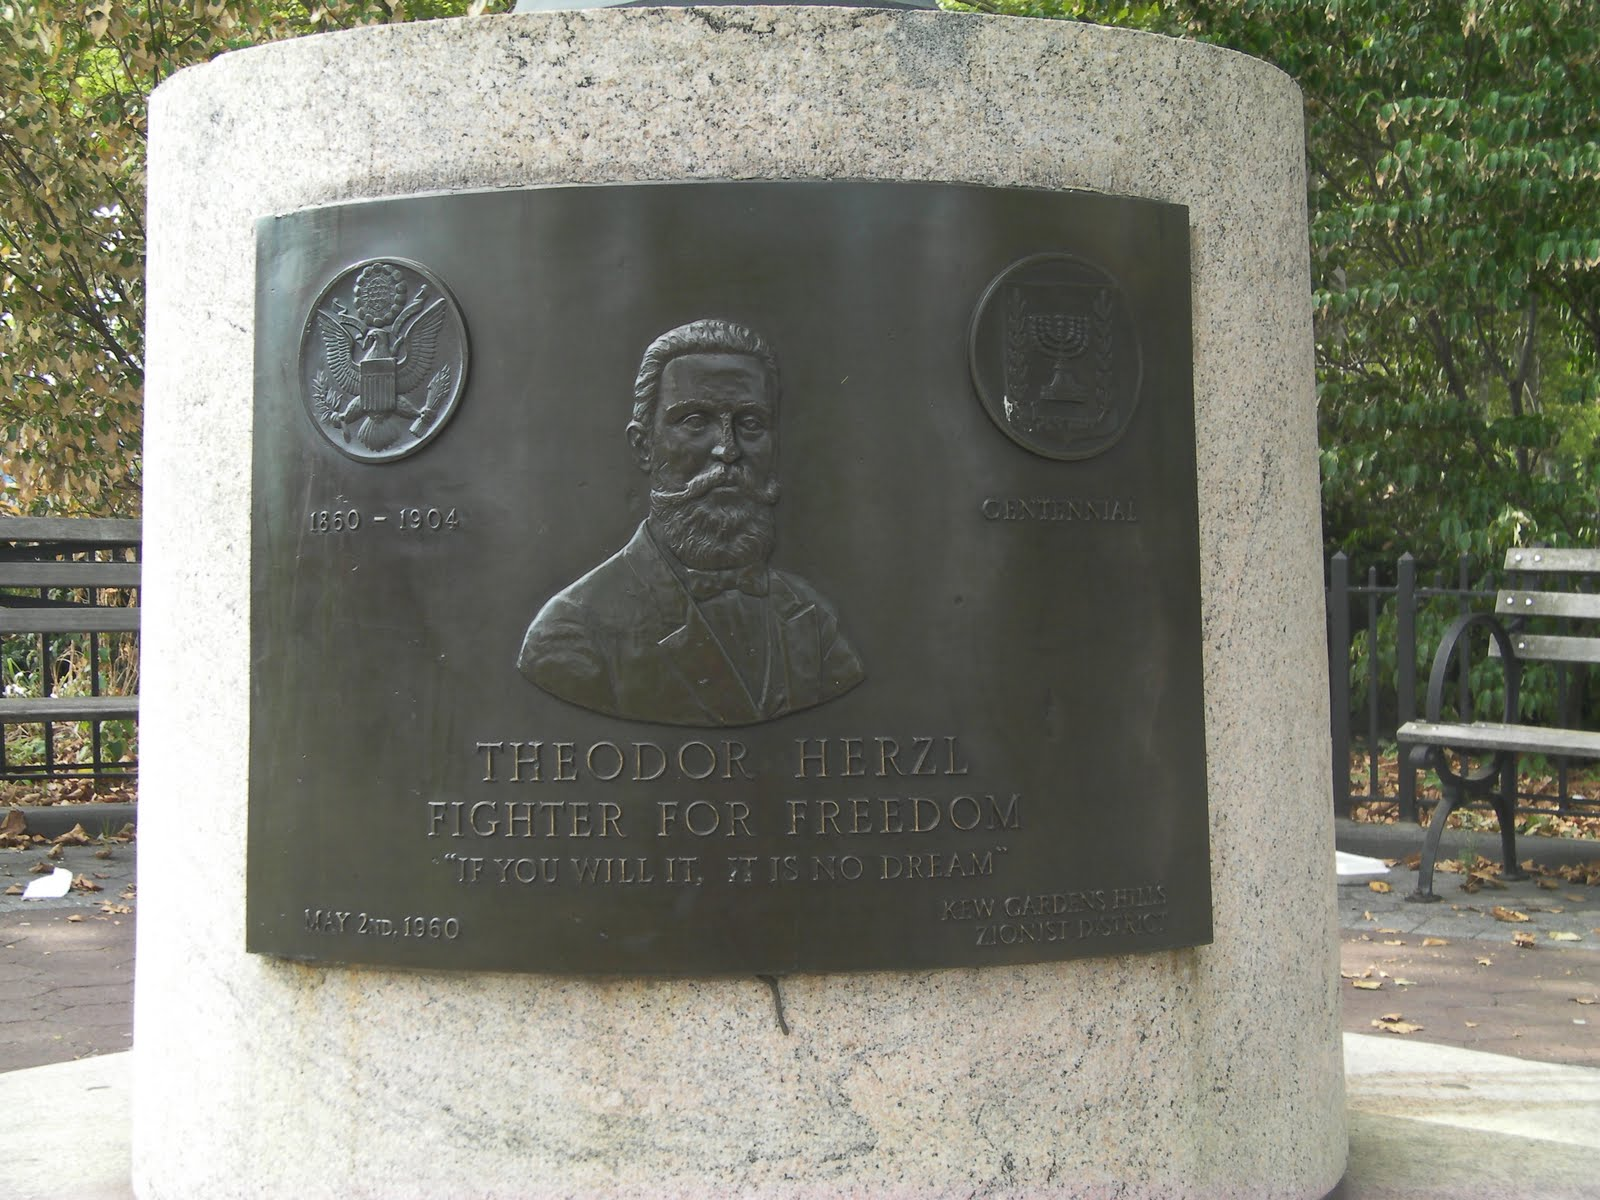 pro bay bloggers a tale of two cities a photo essay the base of this flagpole in dom square park in new york city reads theodore herzl fighter for dom it is located in the kew gardens hills